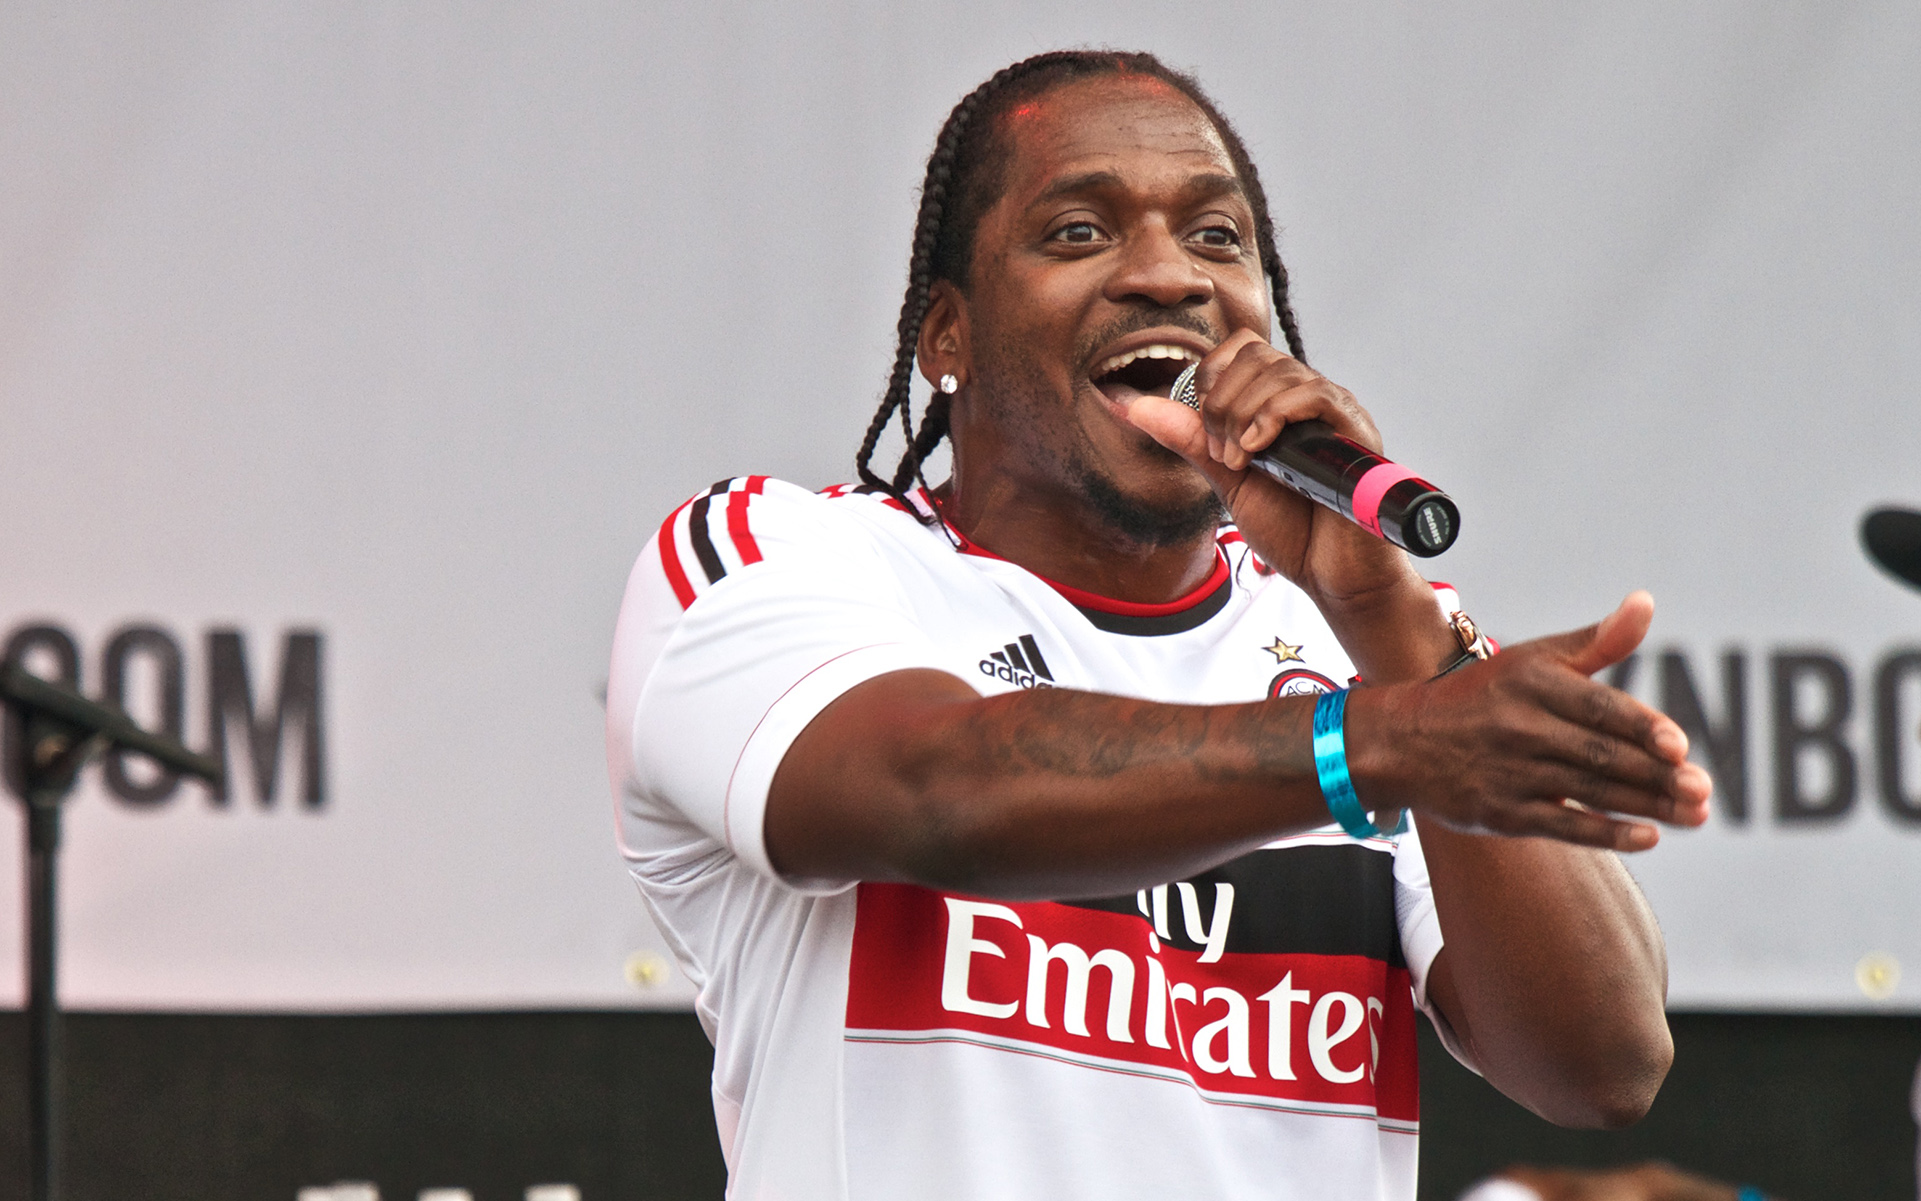 Pusha T supports Prop 64 to legalize adult use cannabis in California